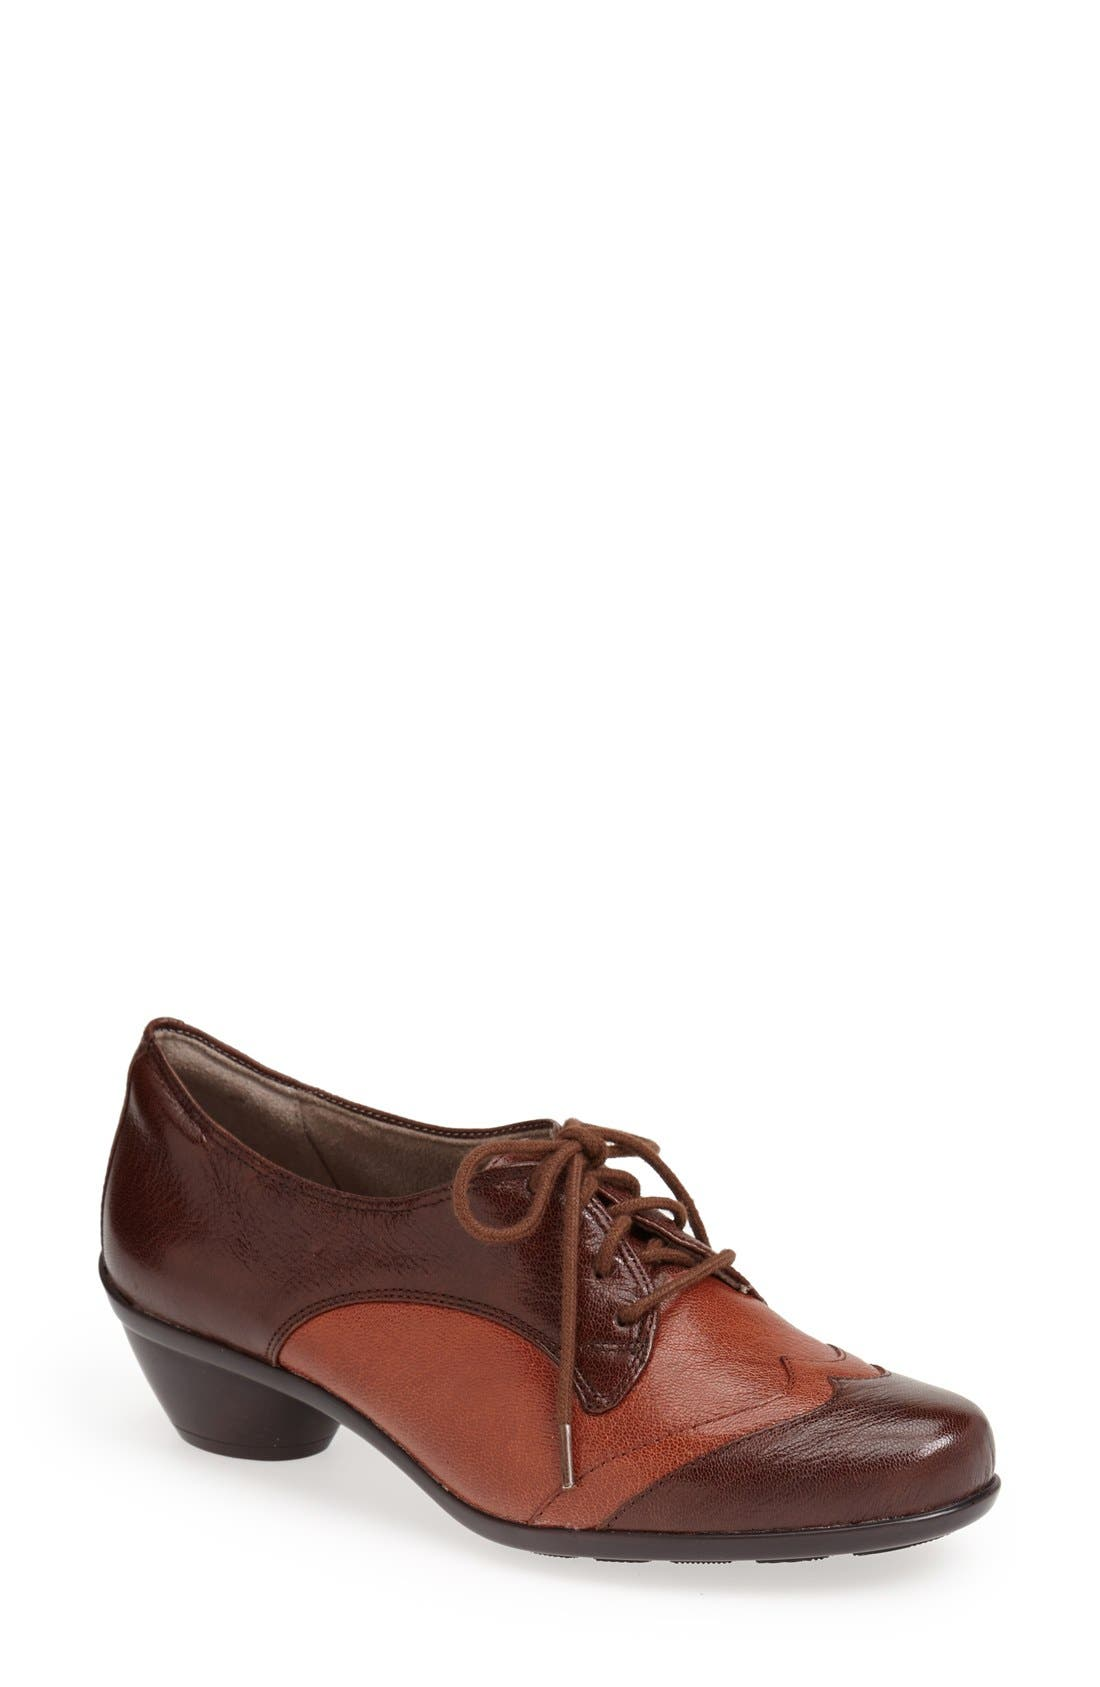 Alternate Image 1 Selected - Naturalizer 'Hampshire' Lace-Up Bootie (Women)